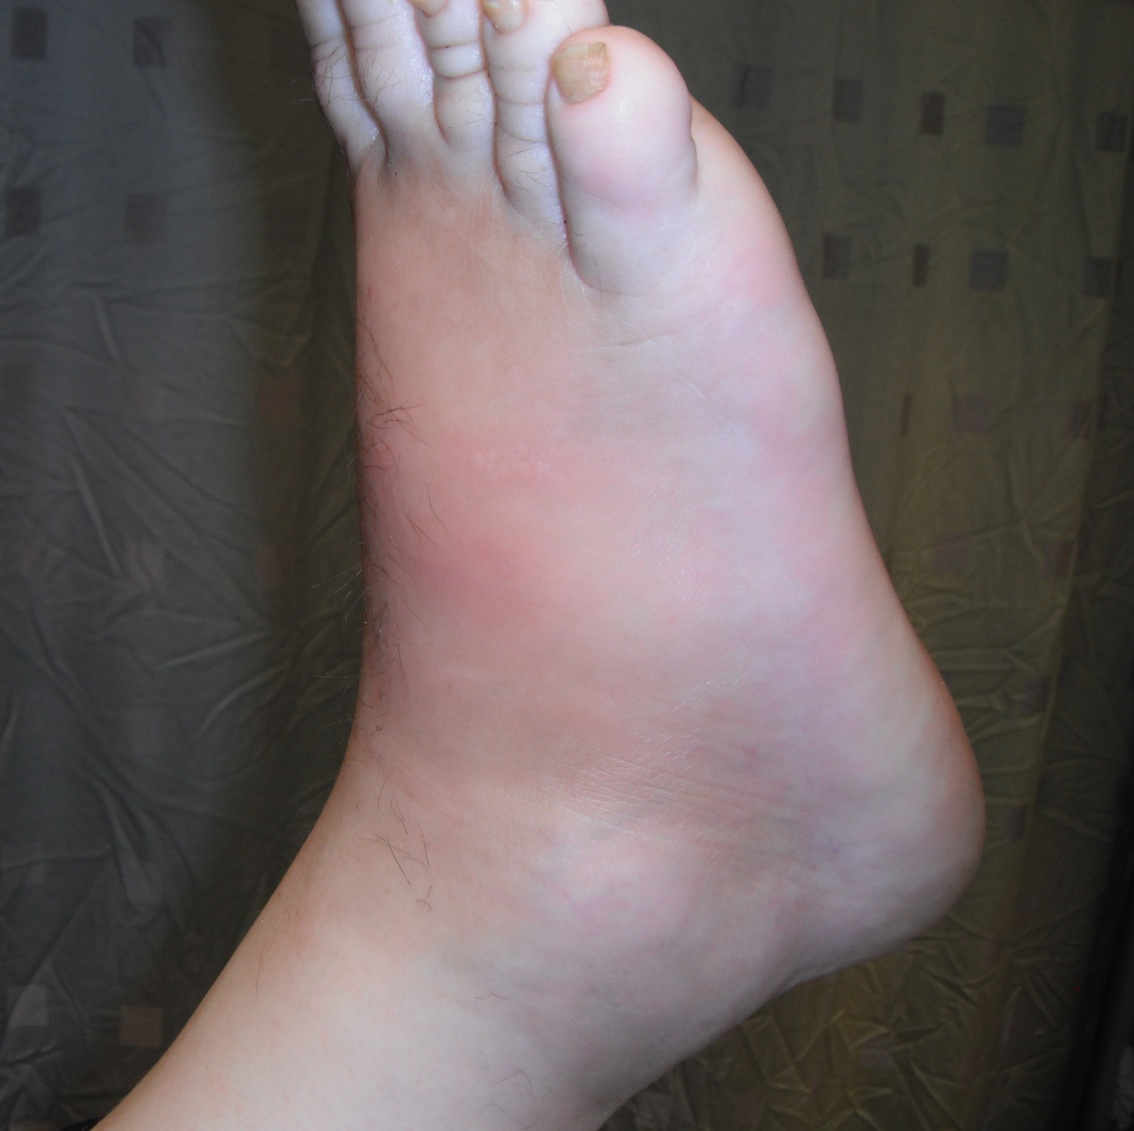 Charcot Foot Elevated